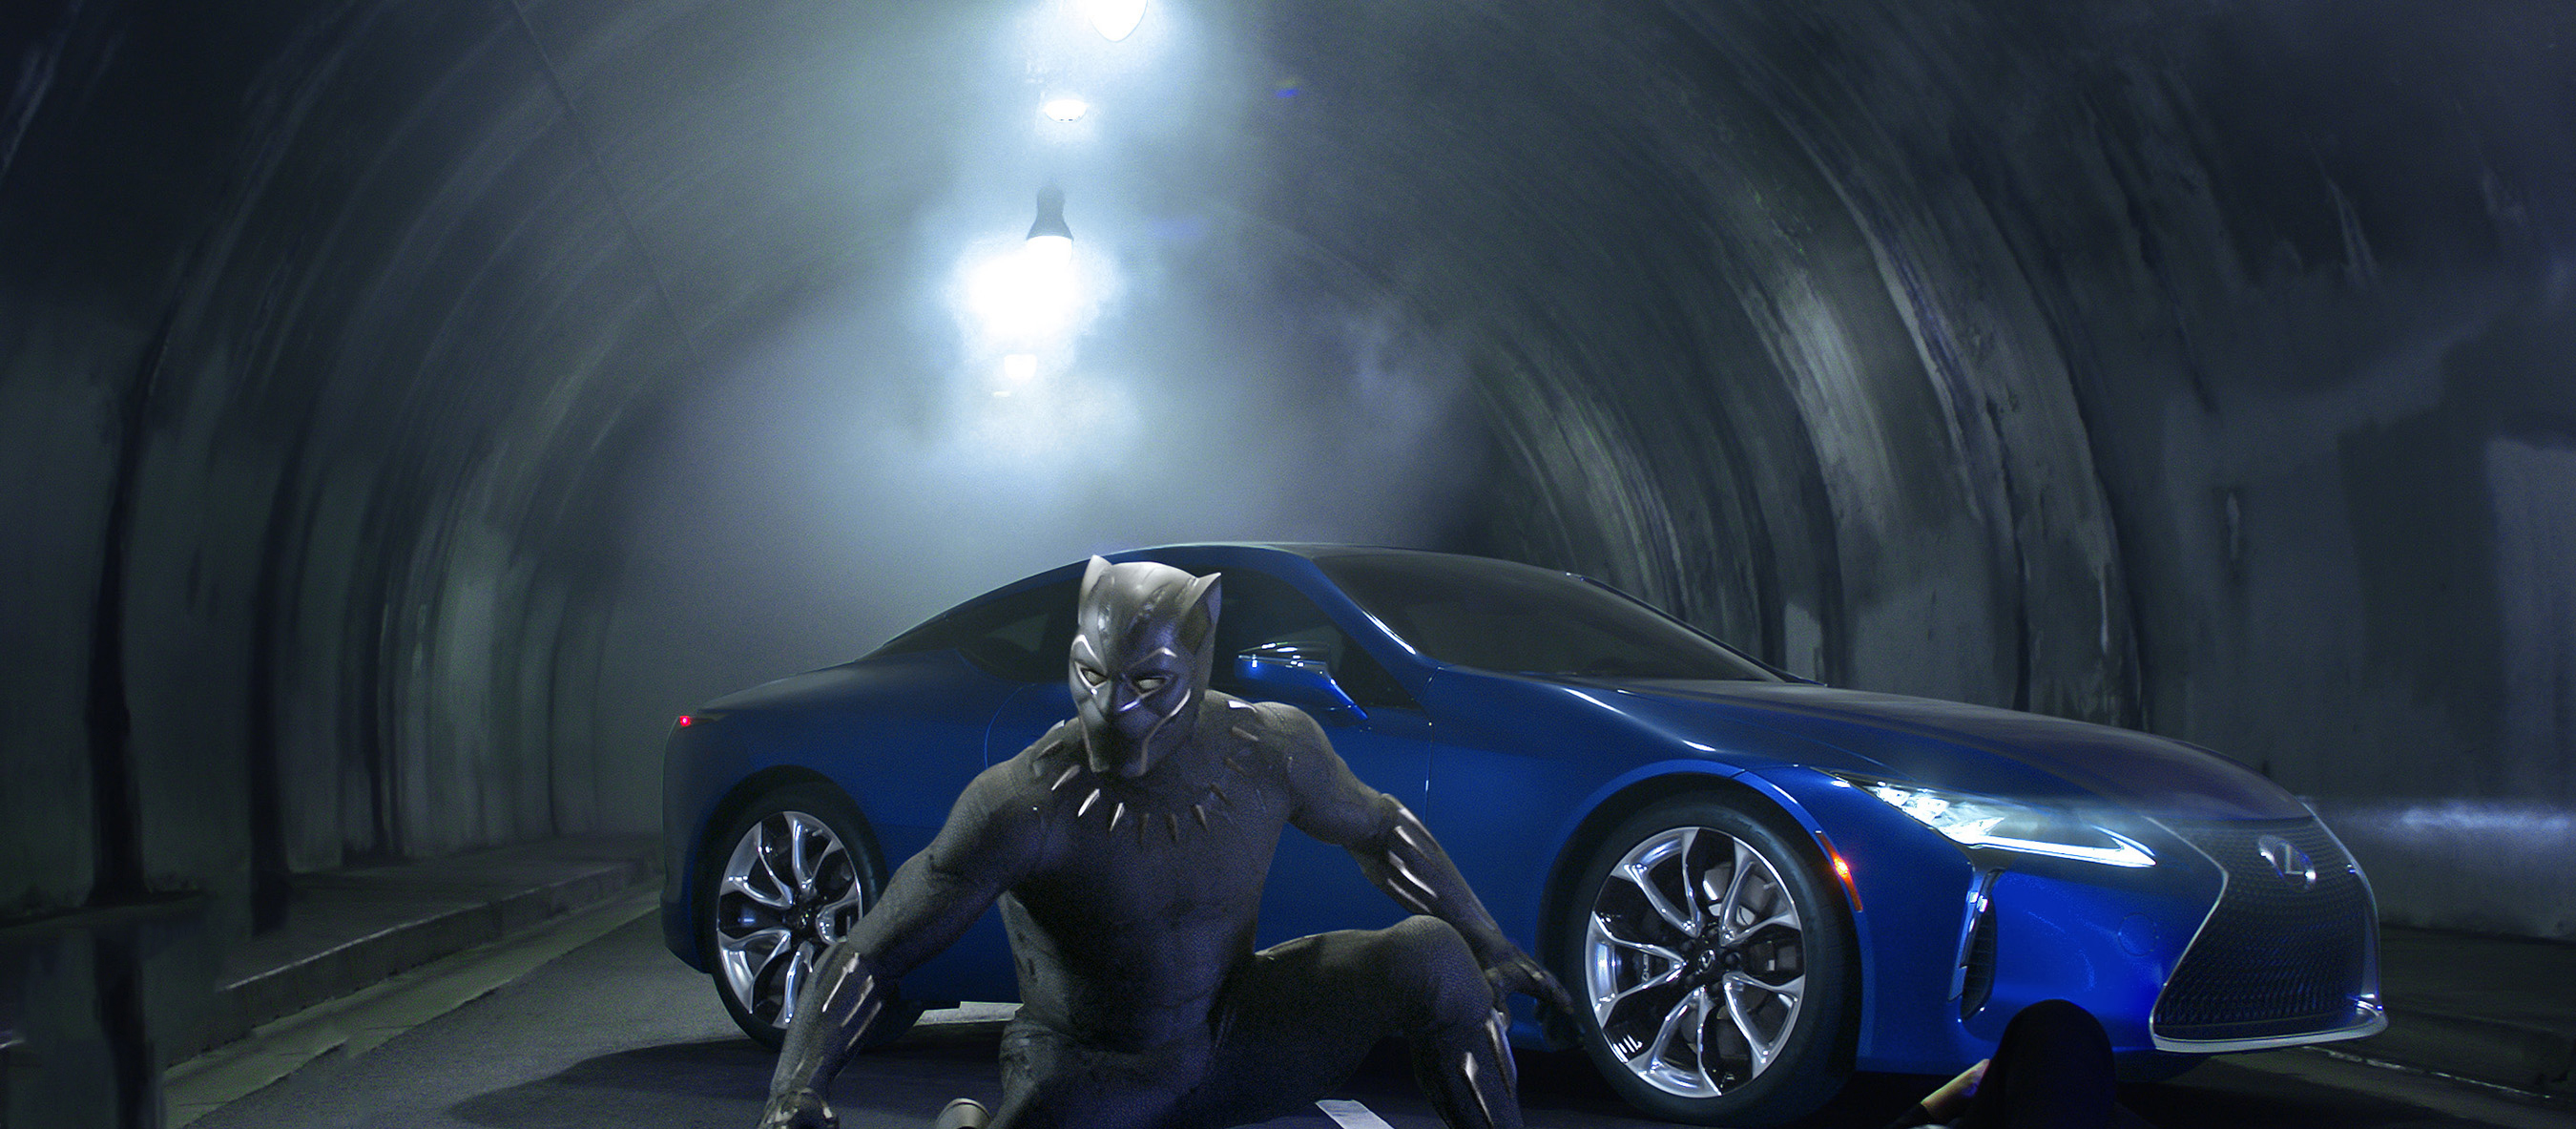 Black Panther 2018 Movie Still Full Hd Wallpaper: Lexus Black Panther LC 500 2018 Movie, HD Movies, 4k